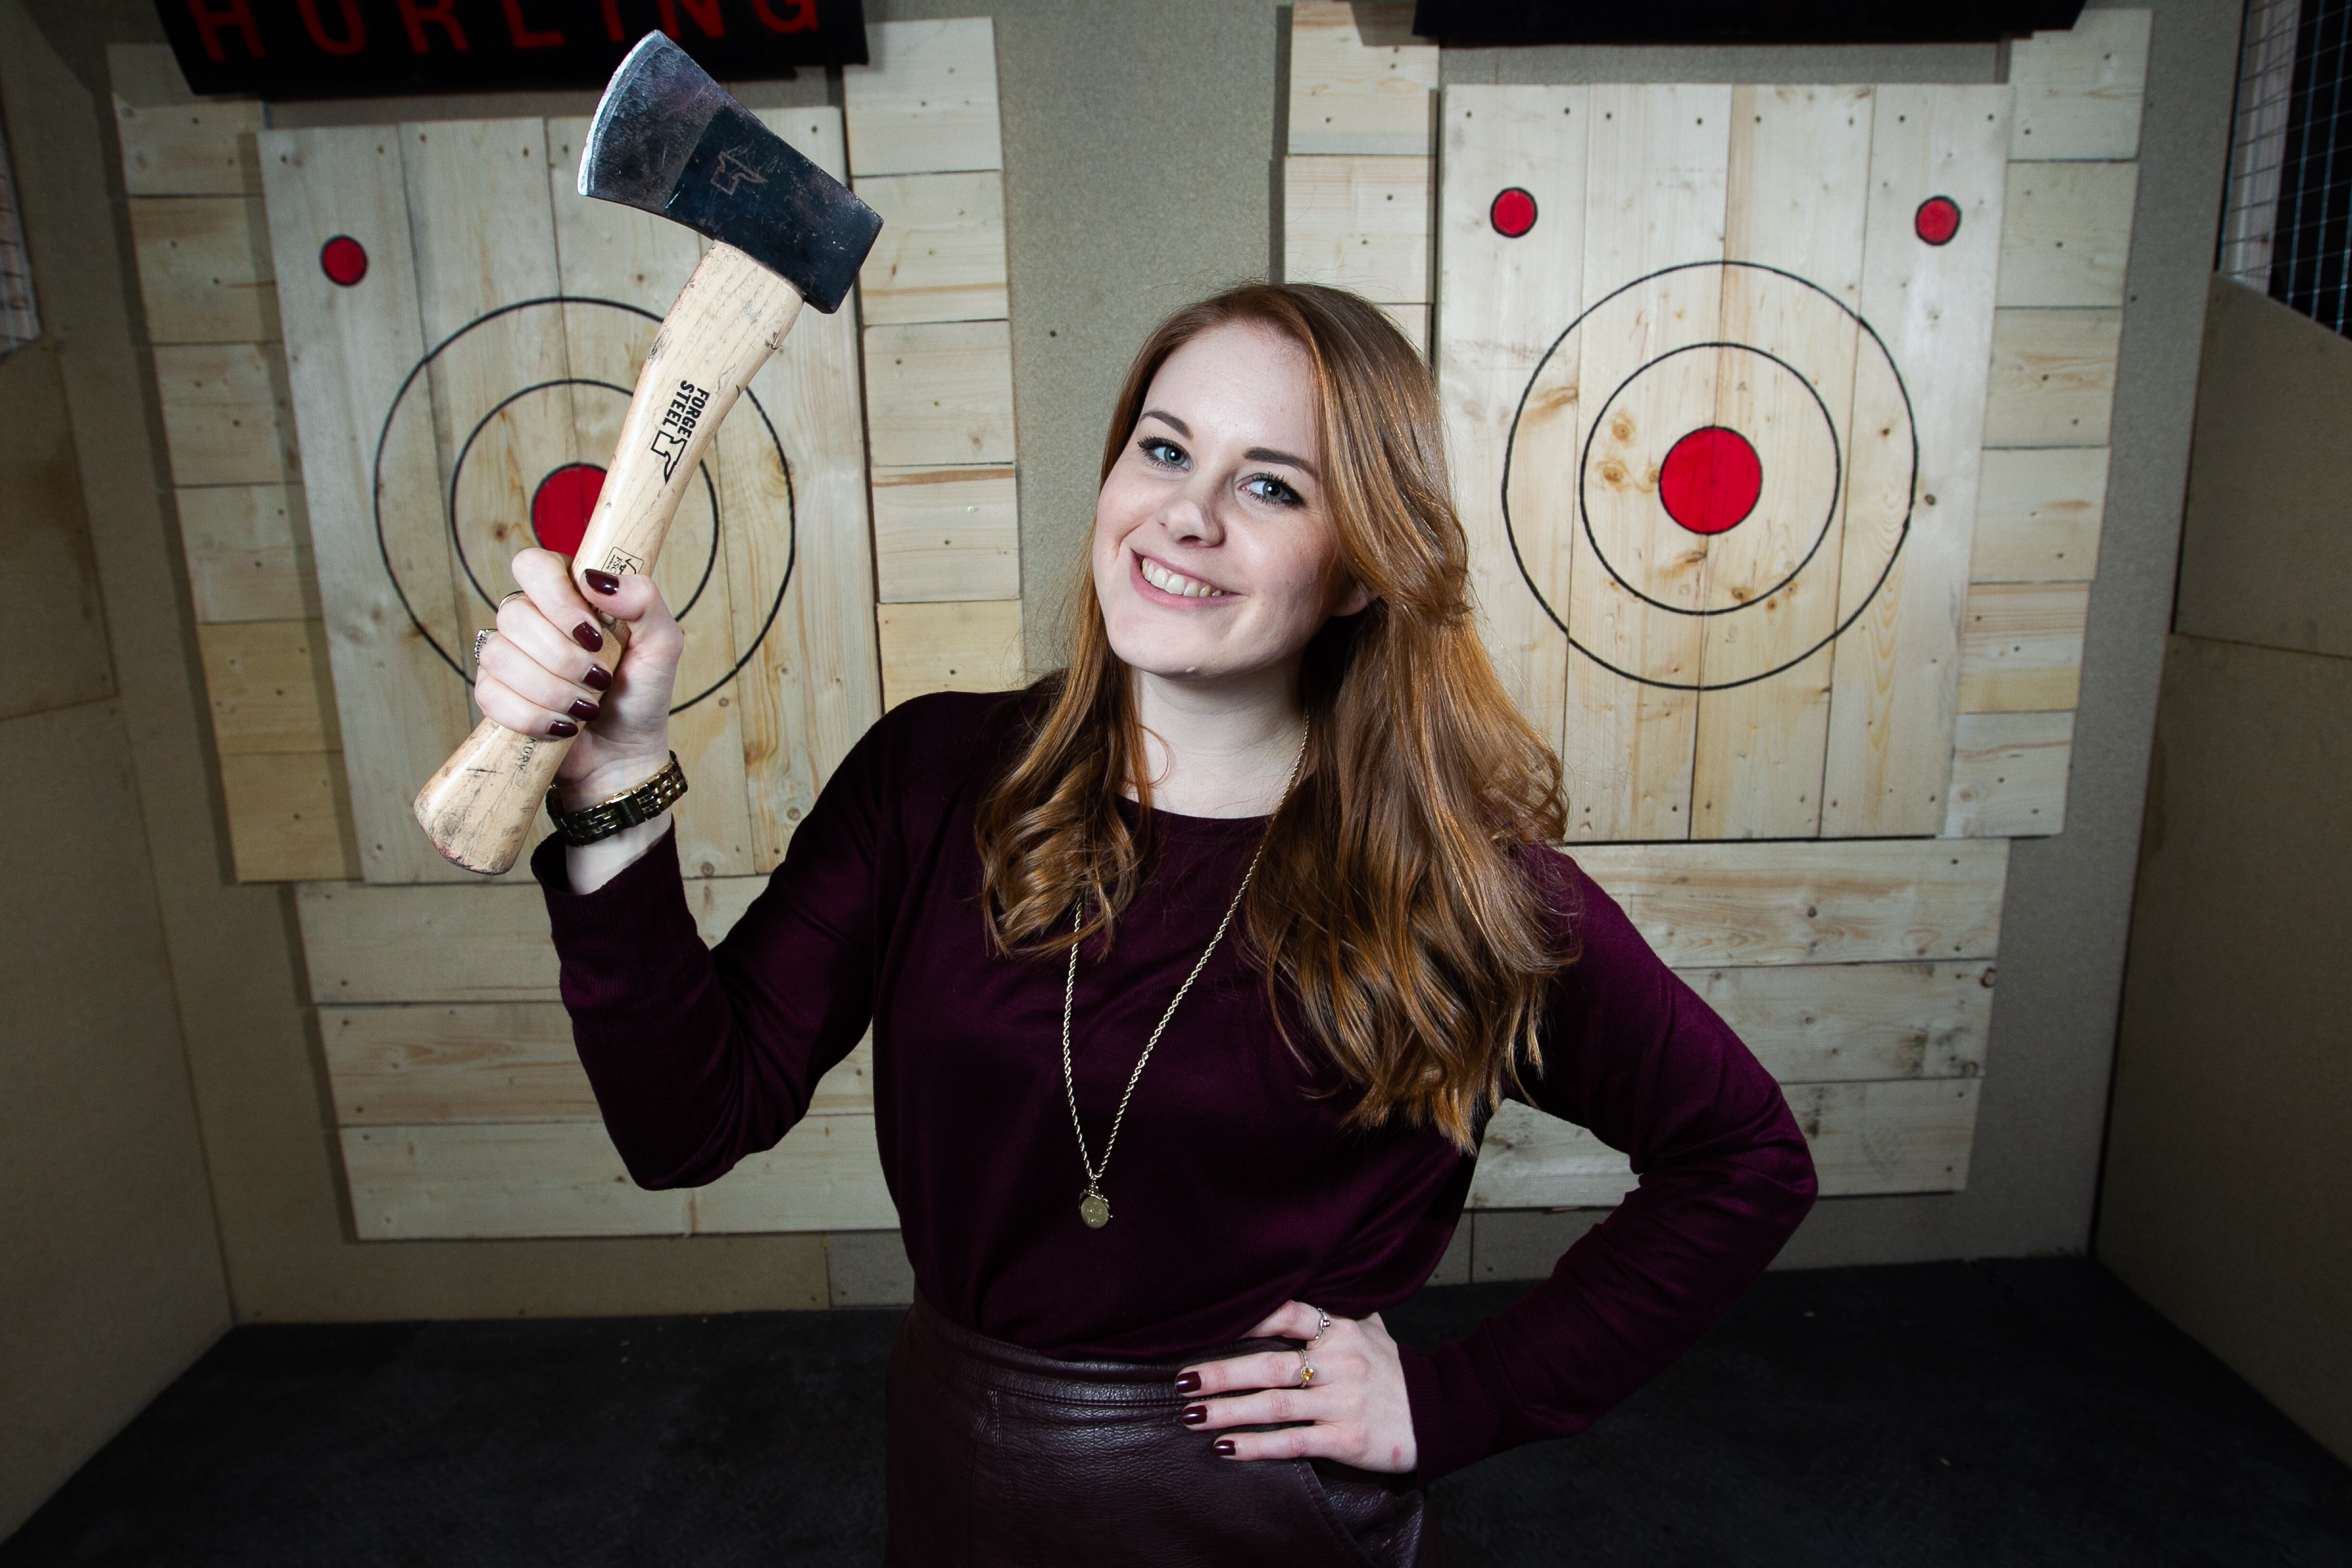 Sunday Post reporter Alice Hinds having a go at axe throwing